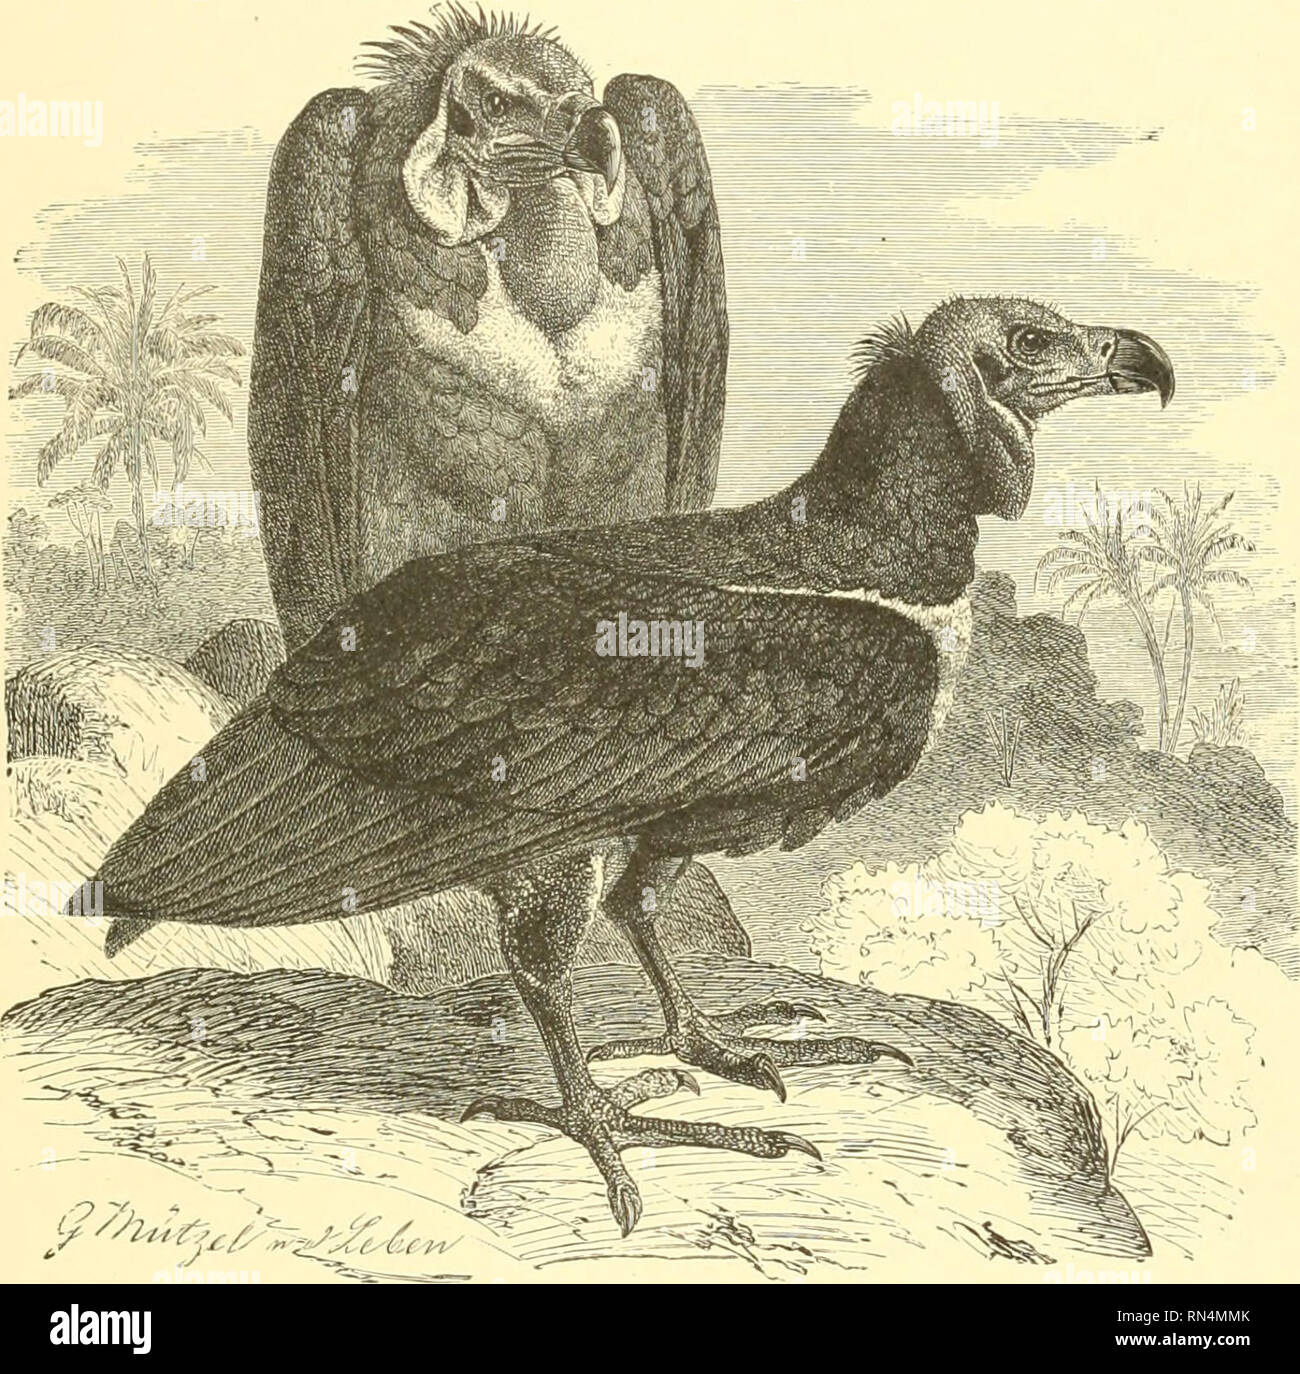 """. Animate creation : popular edition of """"Our living world"""" : a natural history. Zoology; Zoology. THE PONDIGHERRF VULTURE. 23 not by any feeling of community, but by the attraction of a dead animal on which they are glad to feed, whether in company or alone. The Sociable Vulture is a handsome and a large bird. Its length is about four feet, and the measurement of its expanded wings is rather more than ten feet. The general color of its feathers is black-brown, from which circumstance it is called by the colonists the Black Car- rion Bird. The ruff is nearly black, and the feathers of - Stock Image"""